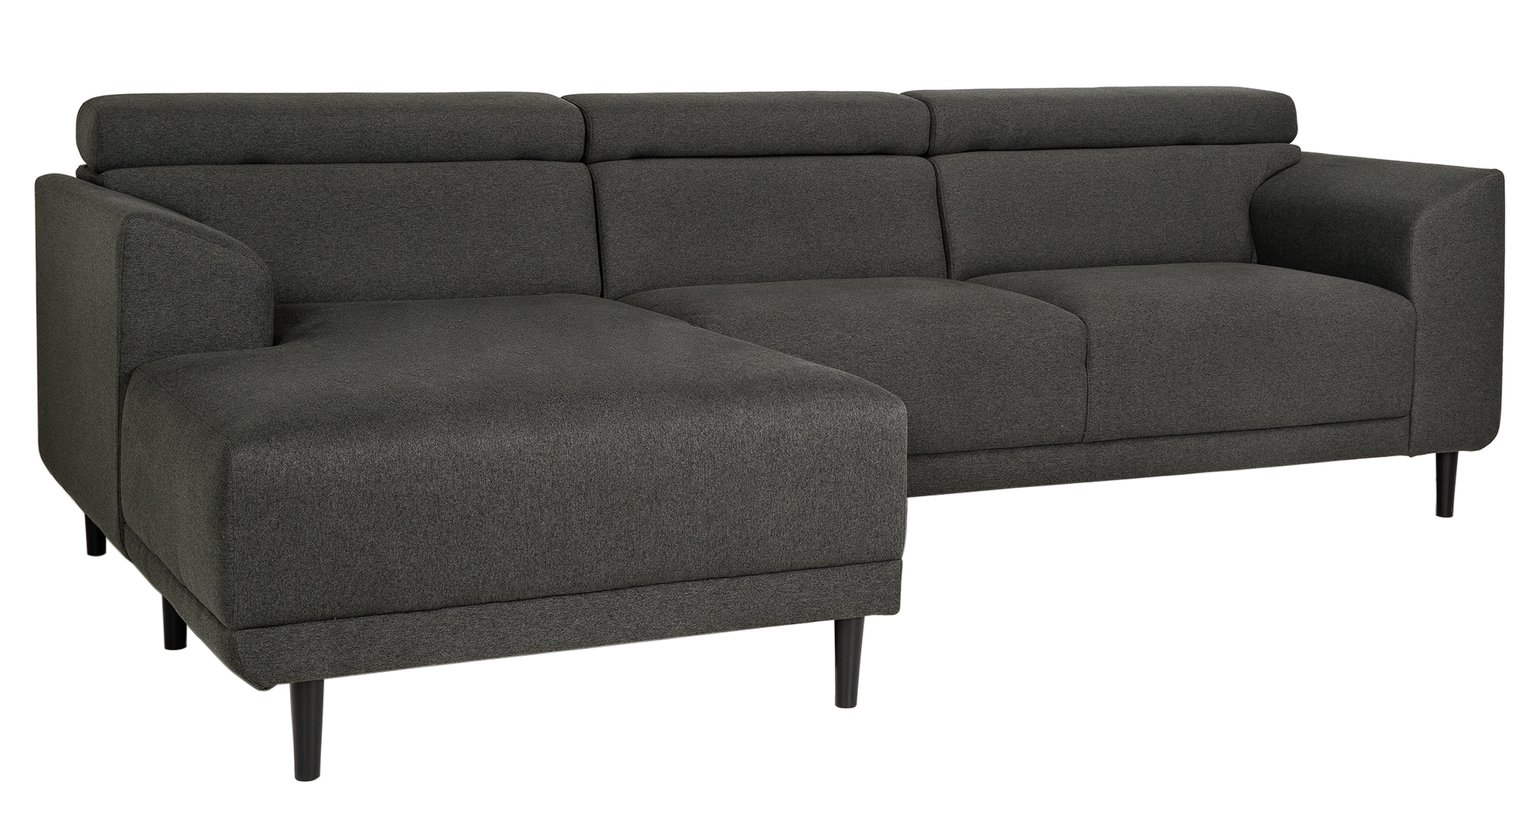 Argos Home Jonas Left Corner Fabric Sofa - Charcoal